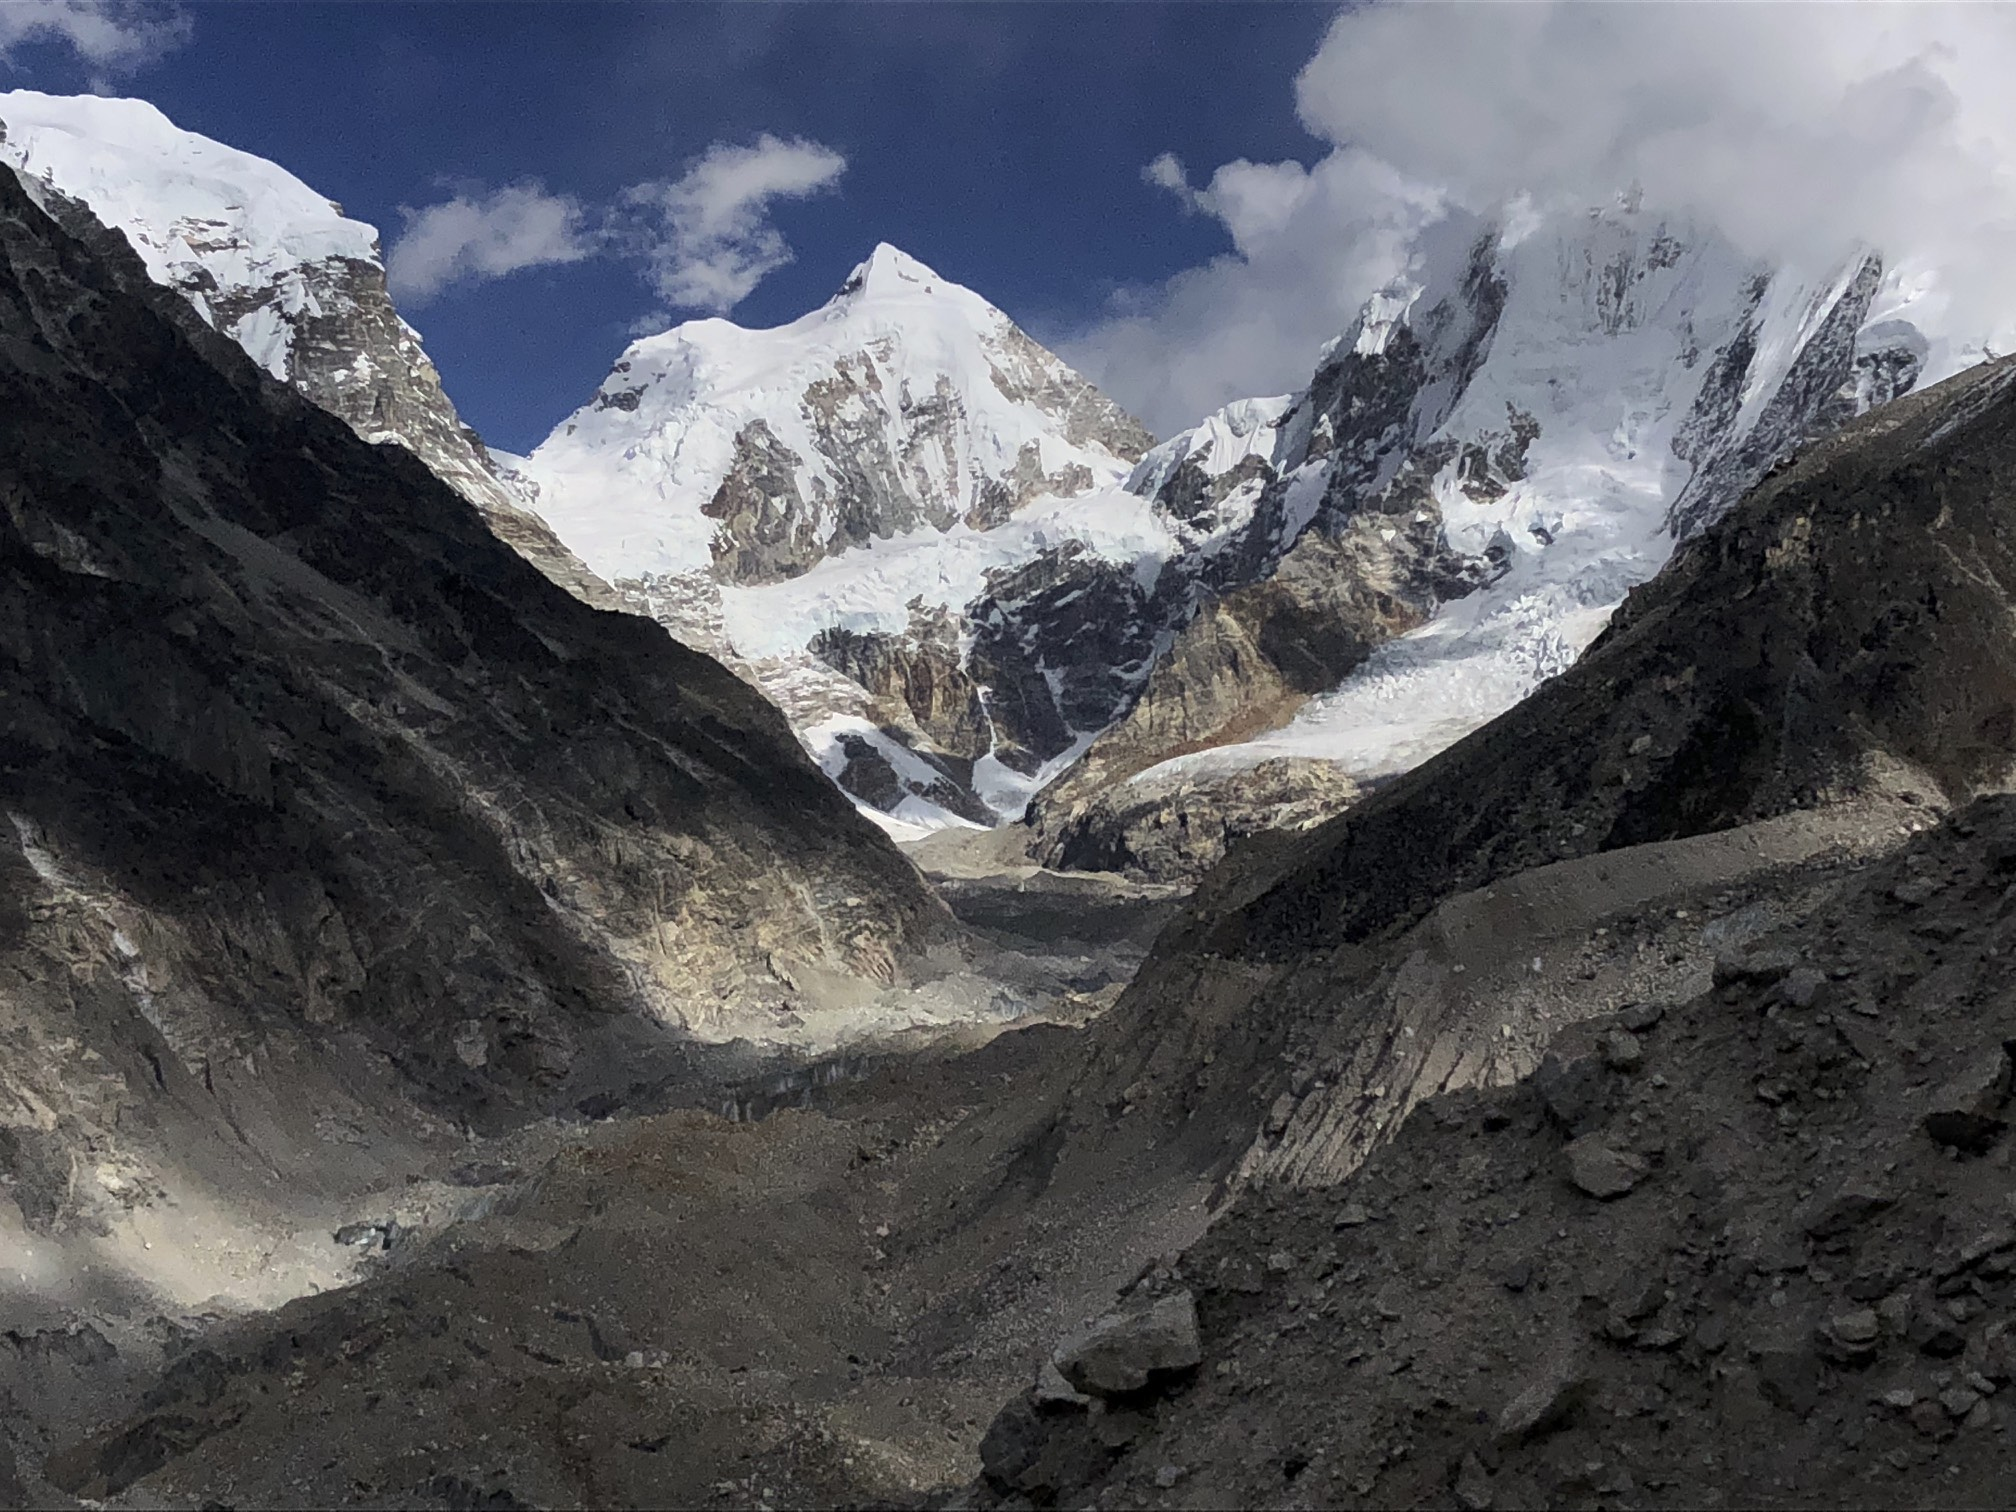 Langshisa Glacier. On the left is Gur Karpo Ri 6,892m, in the middle is Loempo Gang 6,979m and on the right is Dorje Lakpa 6,966m.